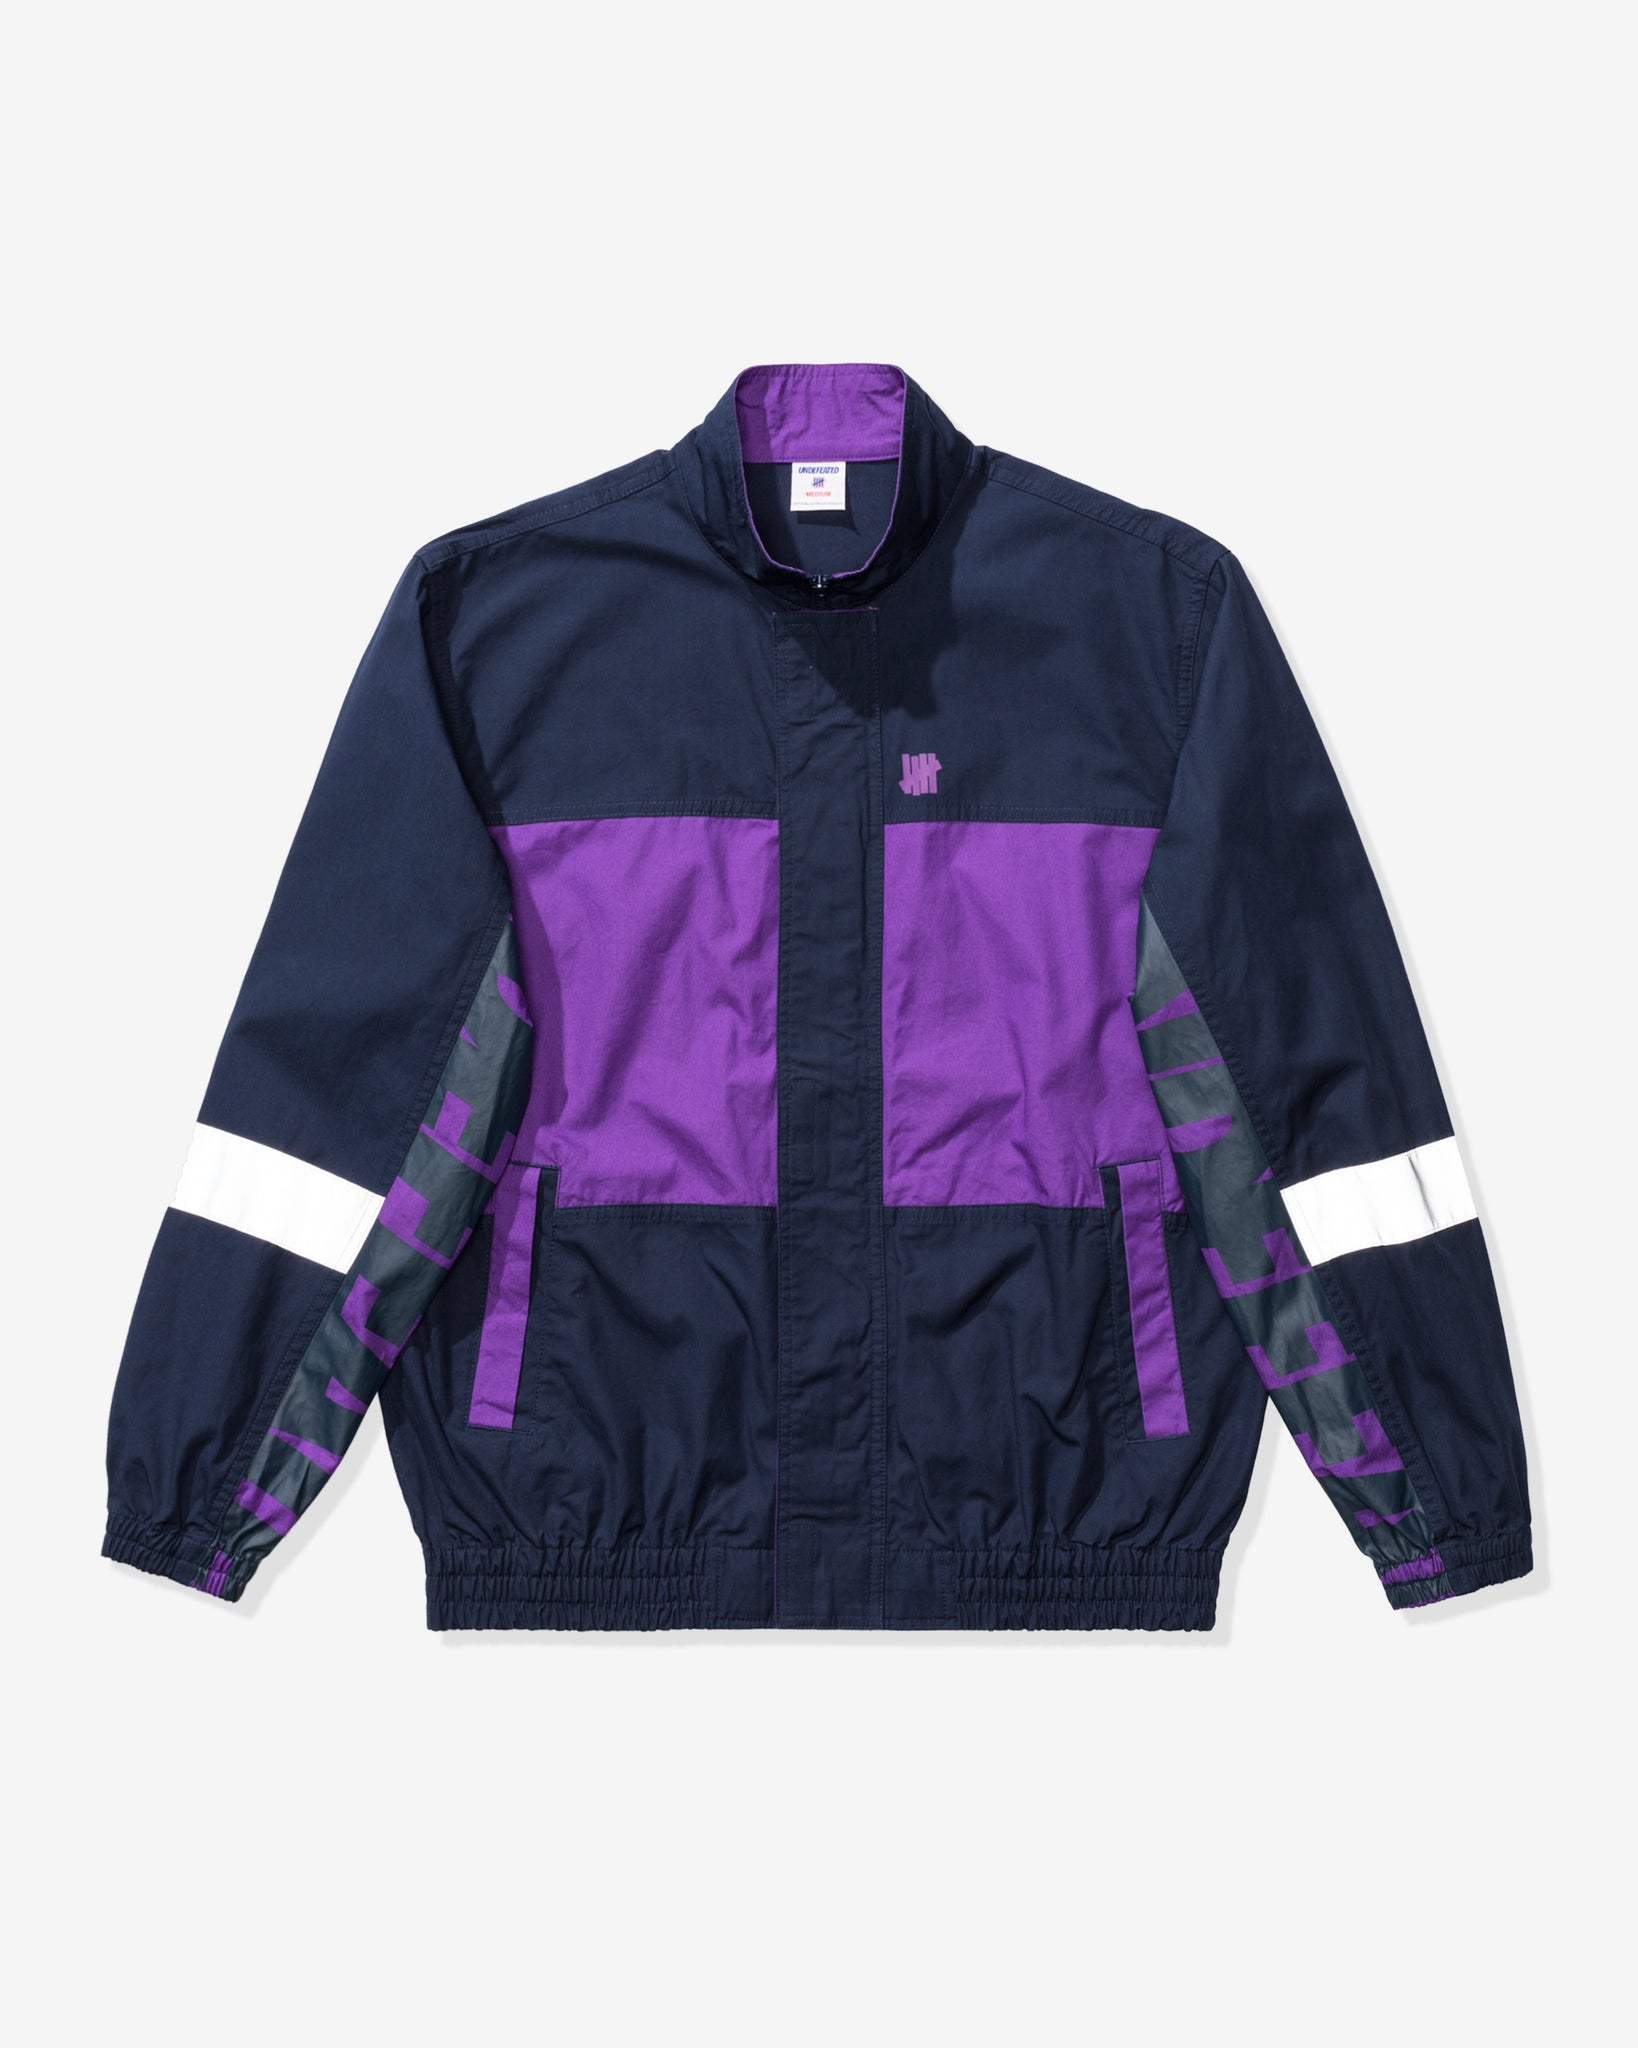 UNDEFEATED LOGO TRACK JACKET